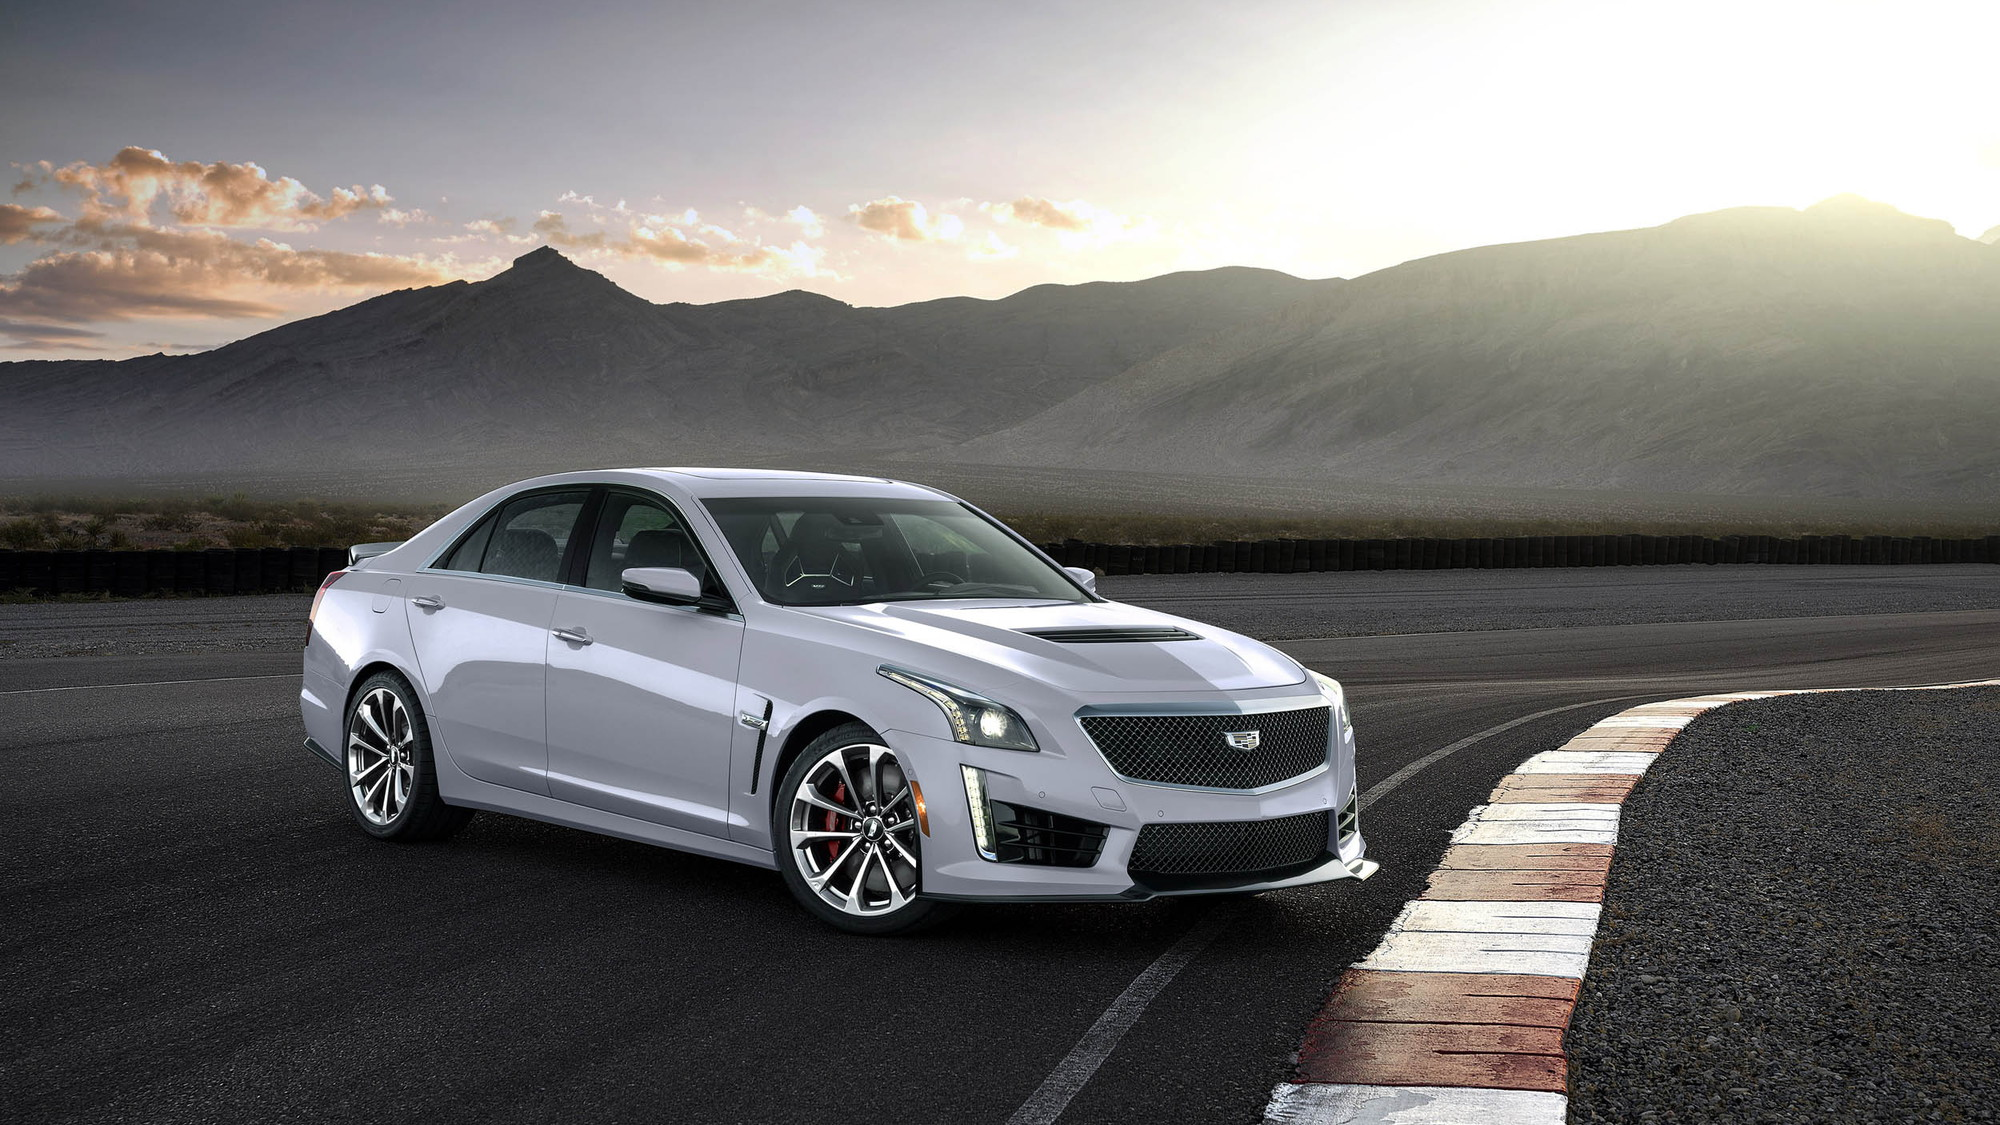 Used Cadillac Cts Coupe >> Hennessey Unleashes 1,226-HP Cadillac CTS-V Coupe: Video